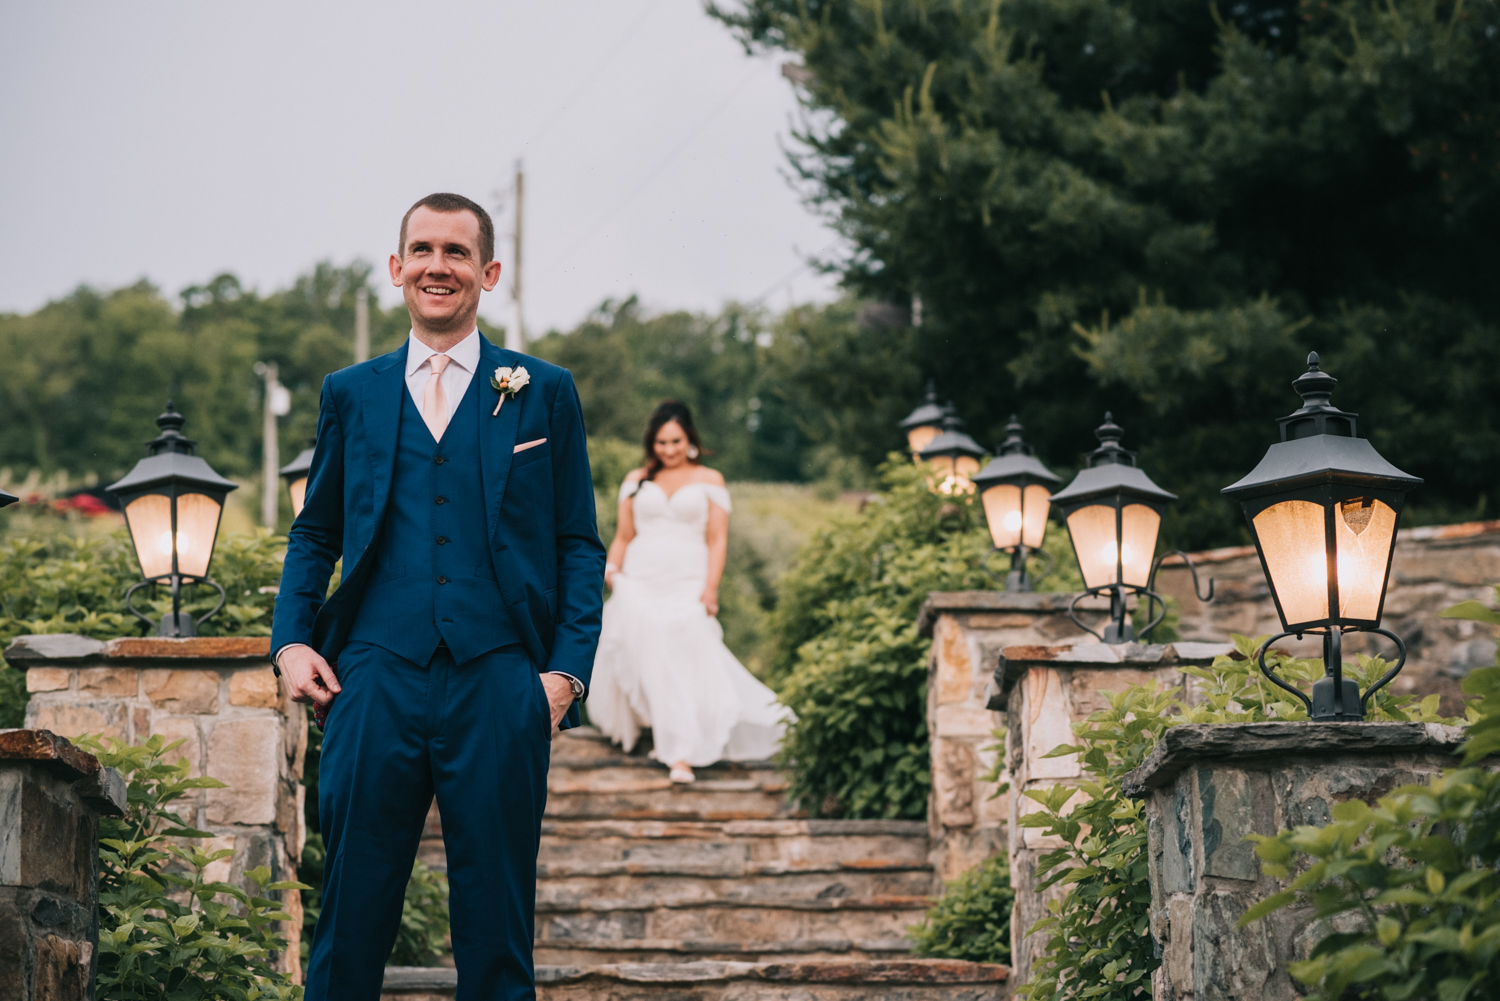 groom waits as bride walks down steps to meet him during first look at Bluemont Vineyard